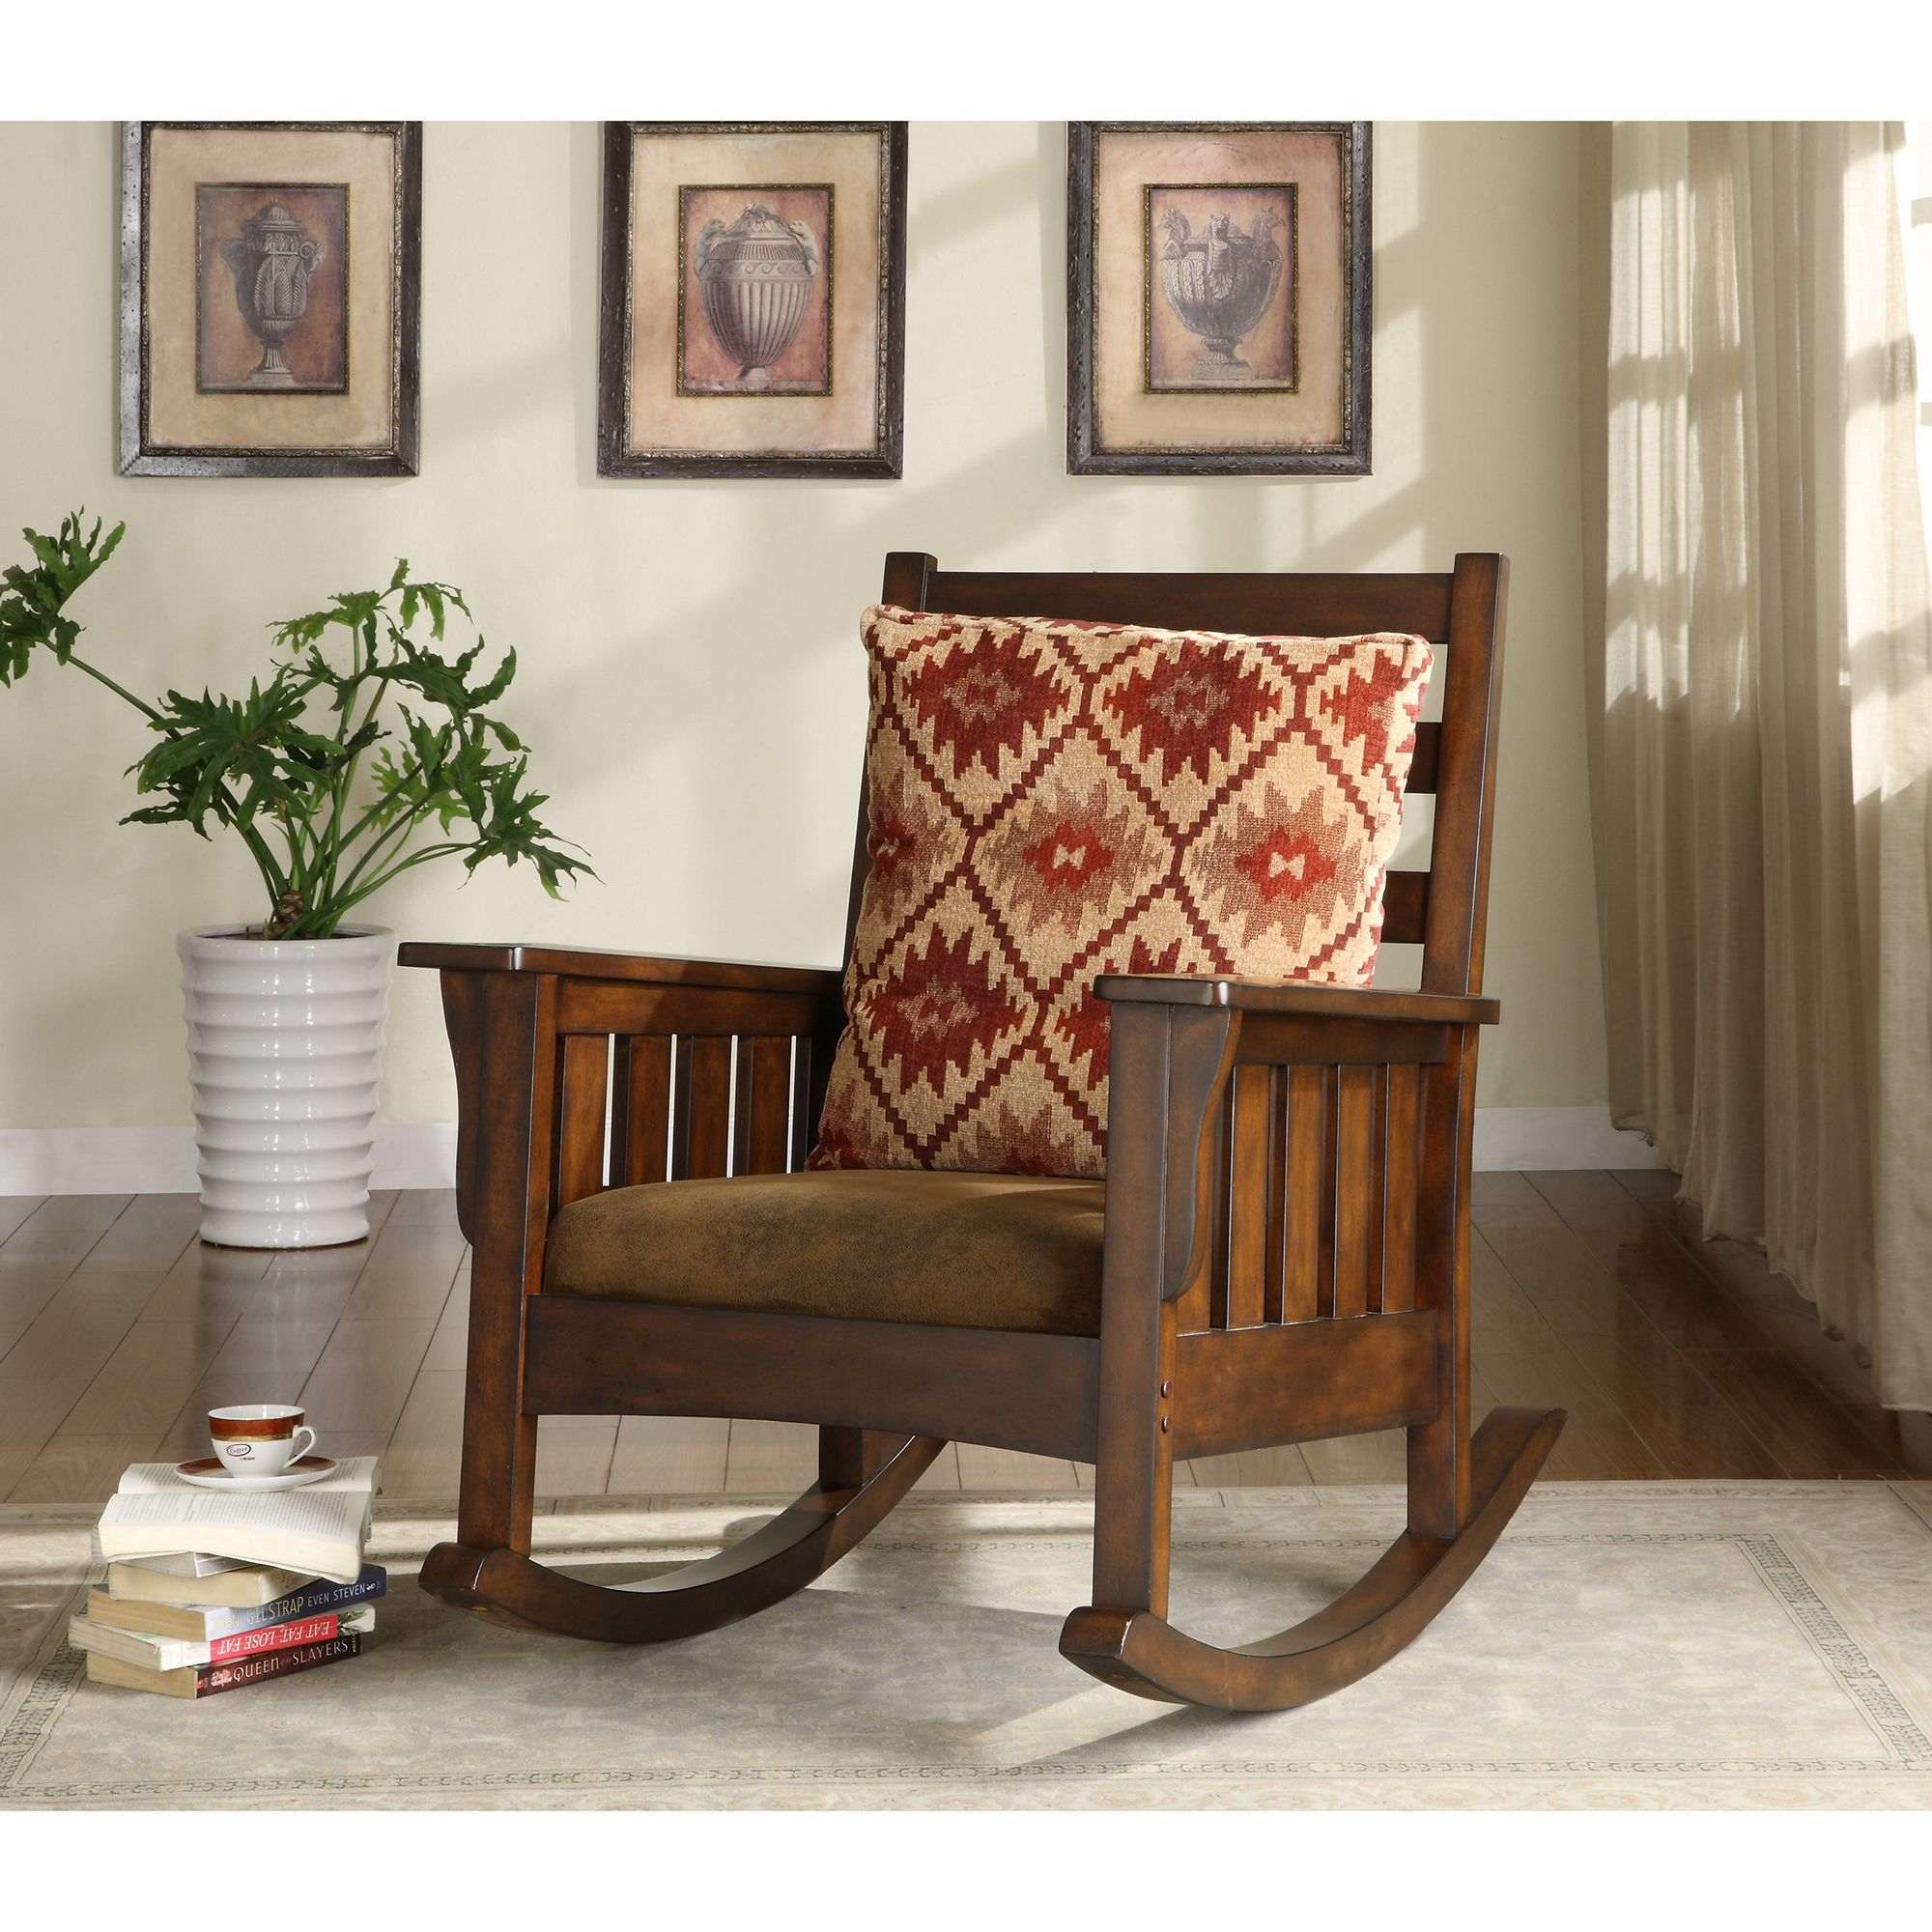 Popular Photo of Rosewood Traditional Dark Oak Rocking Accent Chairs